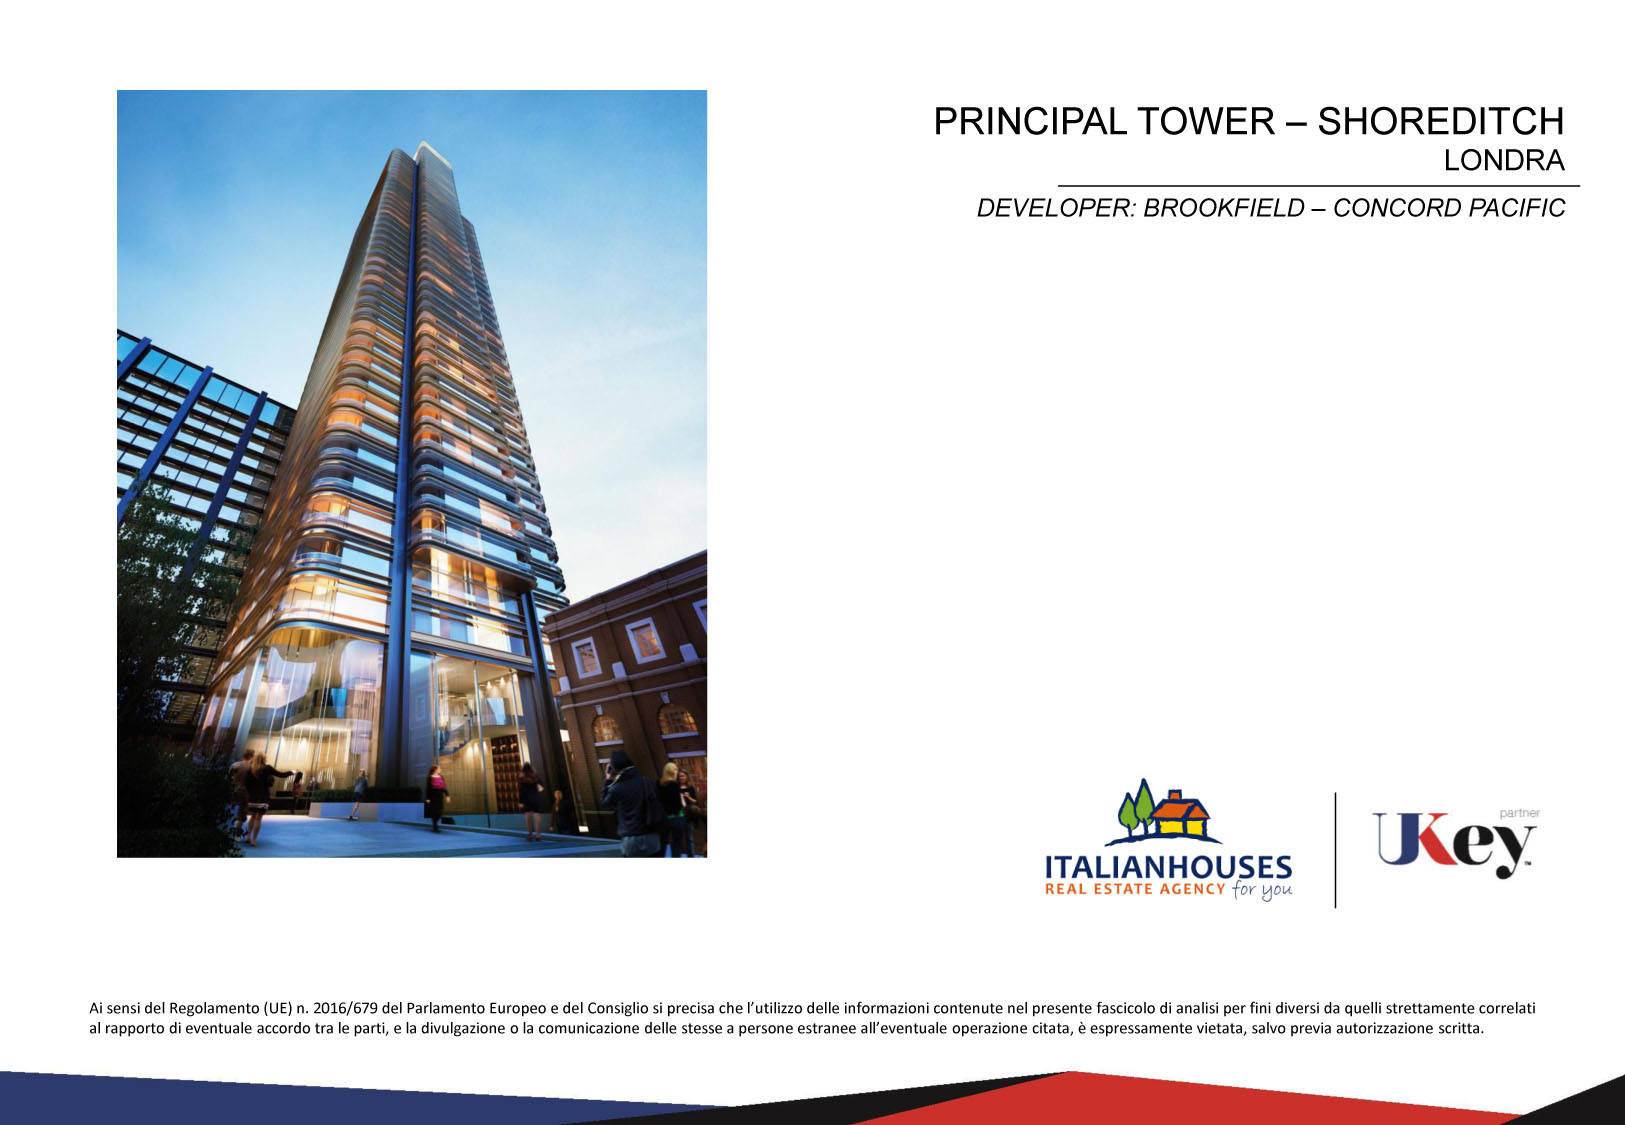 PRINCIPAL TOWER SHOREDITCH LONDON – DEVELOPER: BROOKFIELD  – CONCORD PACIFIC